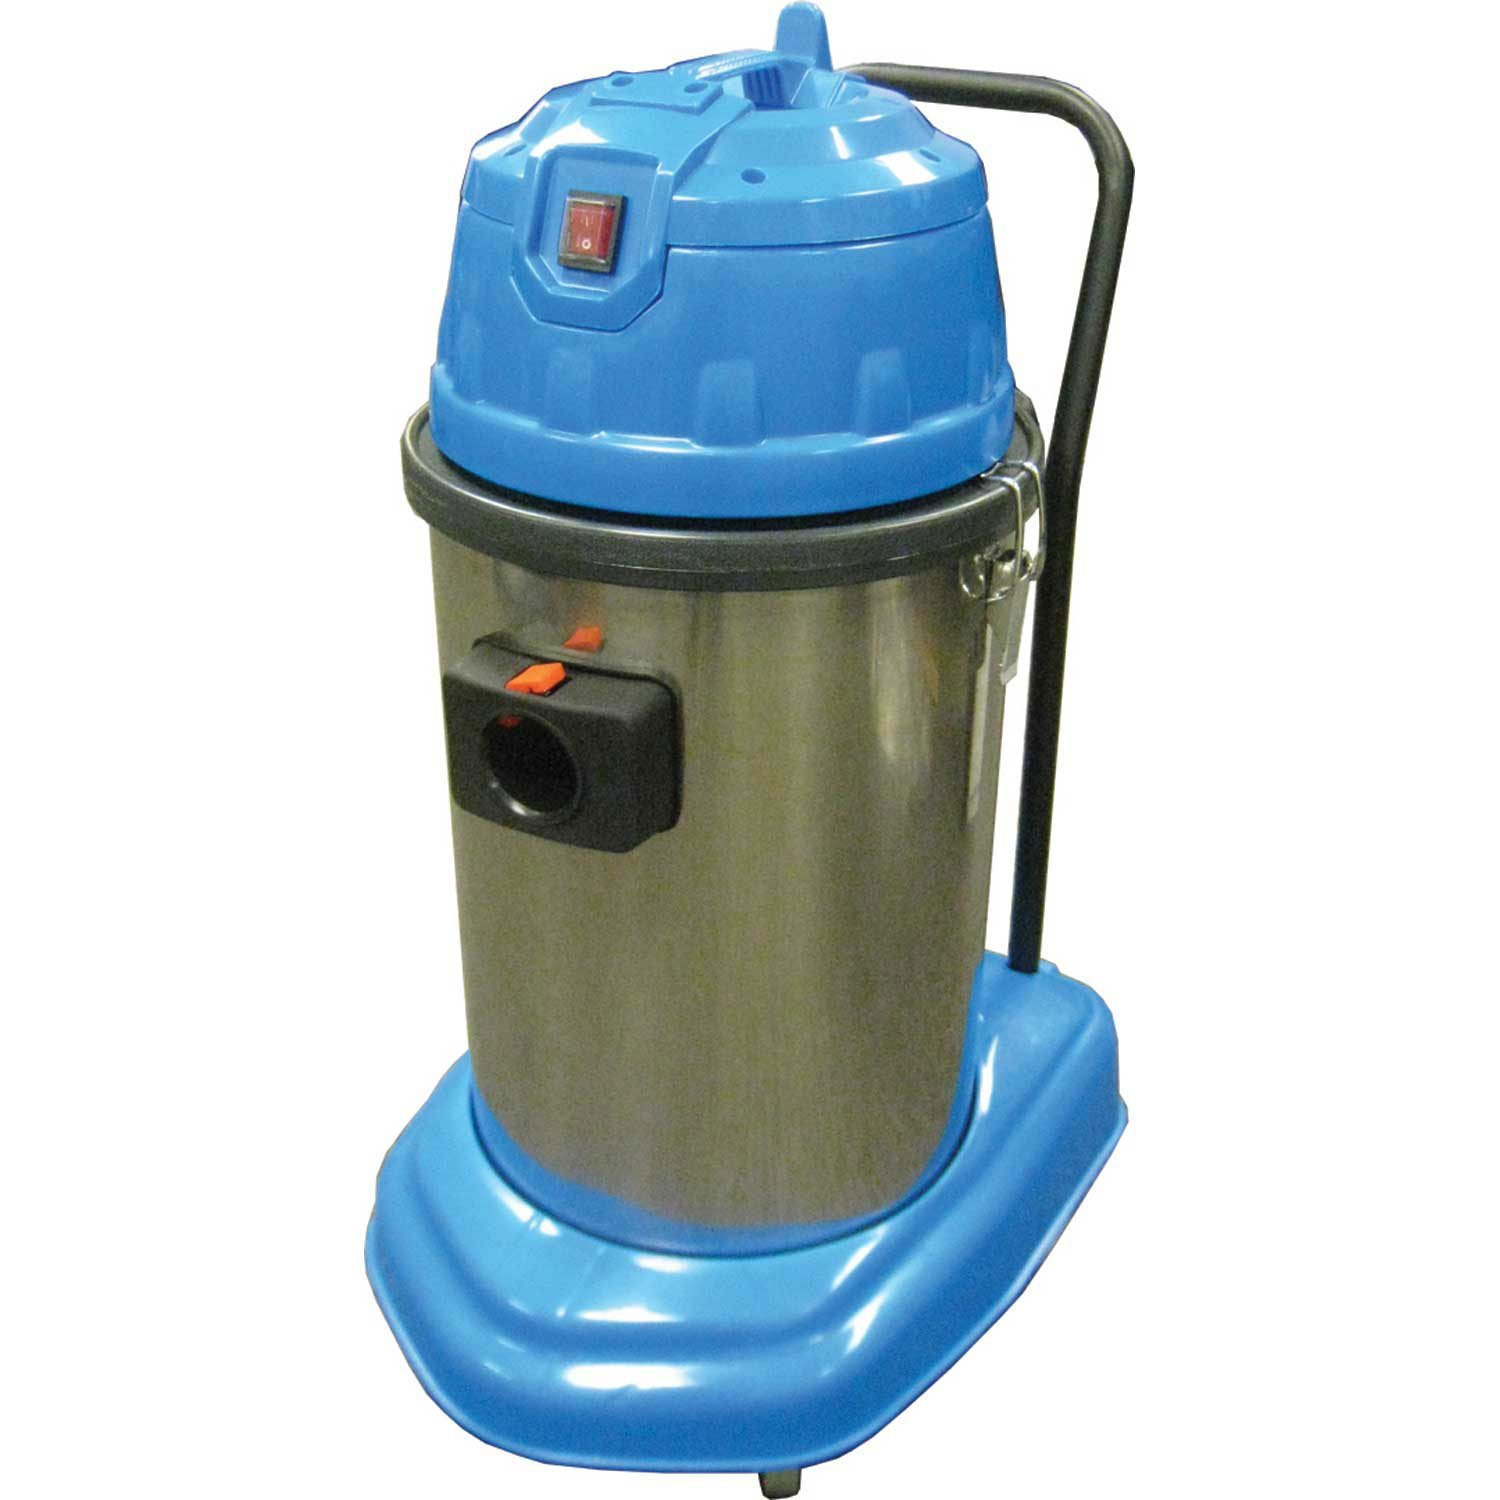 Perfect Products 7 Gallon Wet/Dry Vacuum W/5-Piece Tool Kit, Stainless/Blue